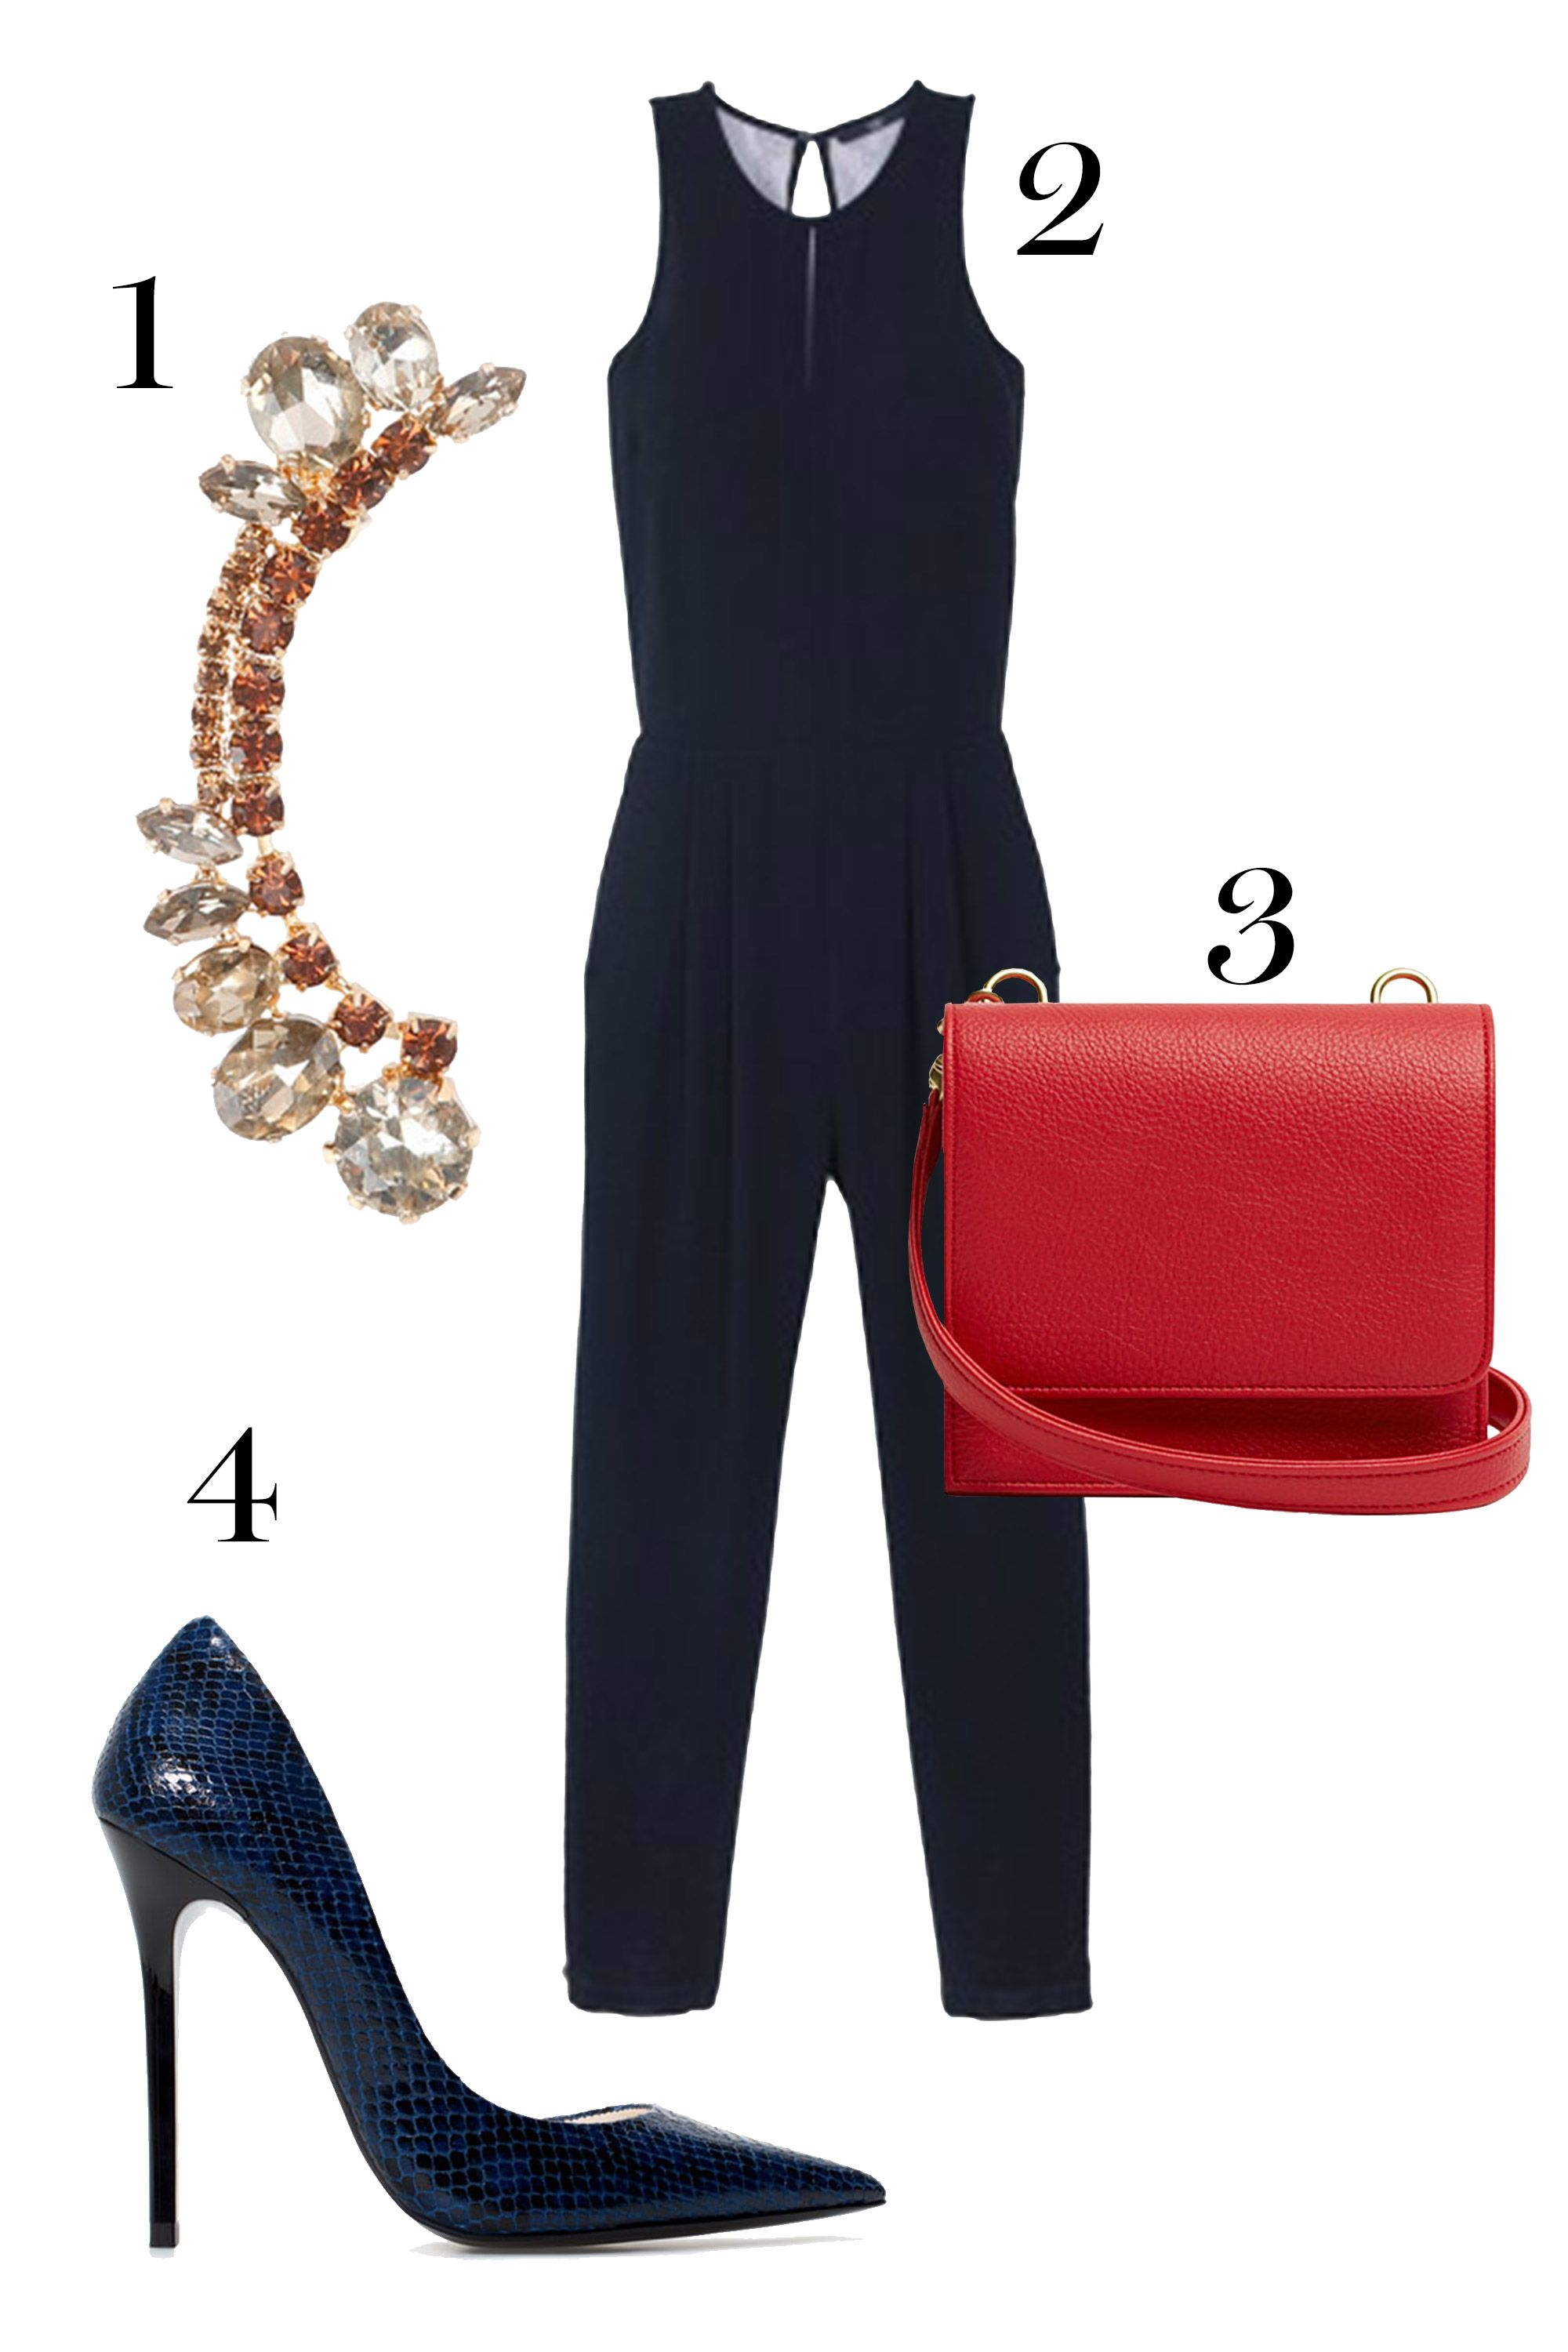 "1. Rue Gembon ear cuff, $70; <a href=""http://www.ruegembon.com/products/zoey"">ruegembon.com.</a>  2. Tibi jumpsuit, $495; <a href=""http://www.tibi.com/shop/features/what-to-wear-for-the-holidays/ringing-in-the-new-year/arden-crepe-lace-jumpsuit"">tibi.com. </a>  3. Freedom of Animals bag, $200, <a href=""http://freedomofanimals.com/collections/bag/products/melia-pia-1"">freedomofanimals.com.</a>  4. Zara heels, $119;<a href=""http://www.zara.com/us/en/woman/shoes/high-heels/printed-leather-court-shoes-c269195p2195527.html""> zara.com.</a>"